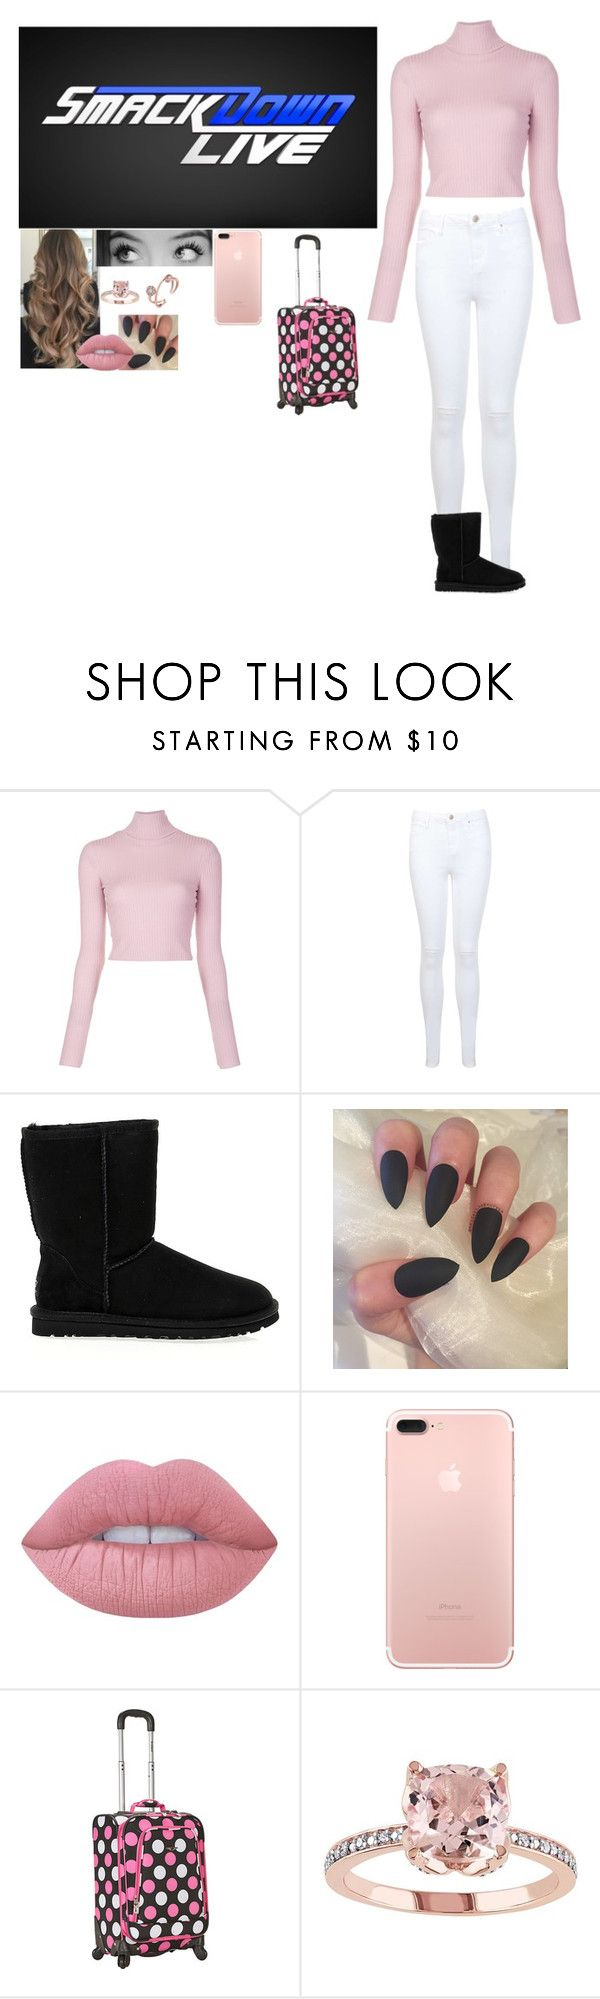 """""""Arriving at Smackdown"""" by riley-497 ❤ liked on Polyvore featuring A.L.C., Miss Selfridge, UGG Australia, WWE, Gucci, Lime Crime and Rockland Luggage"""